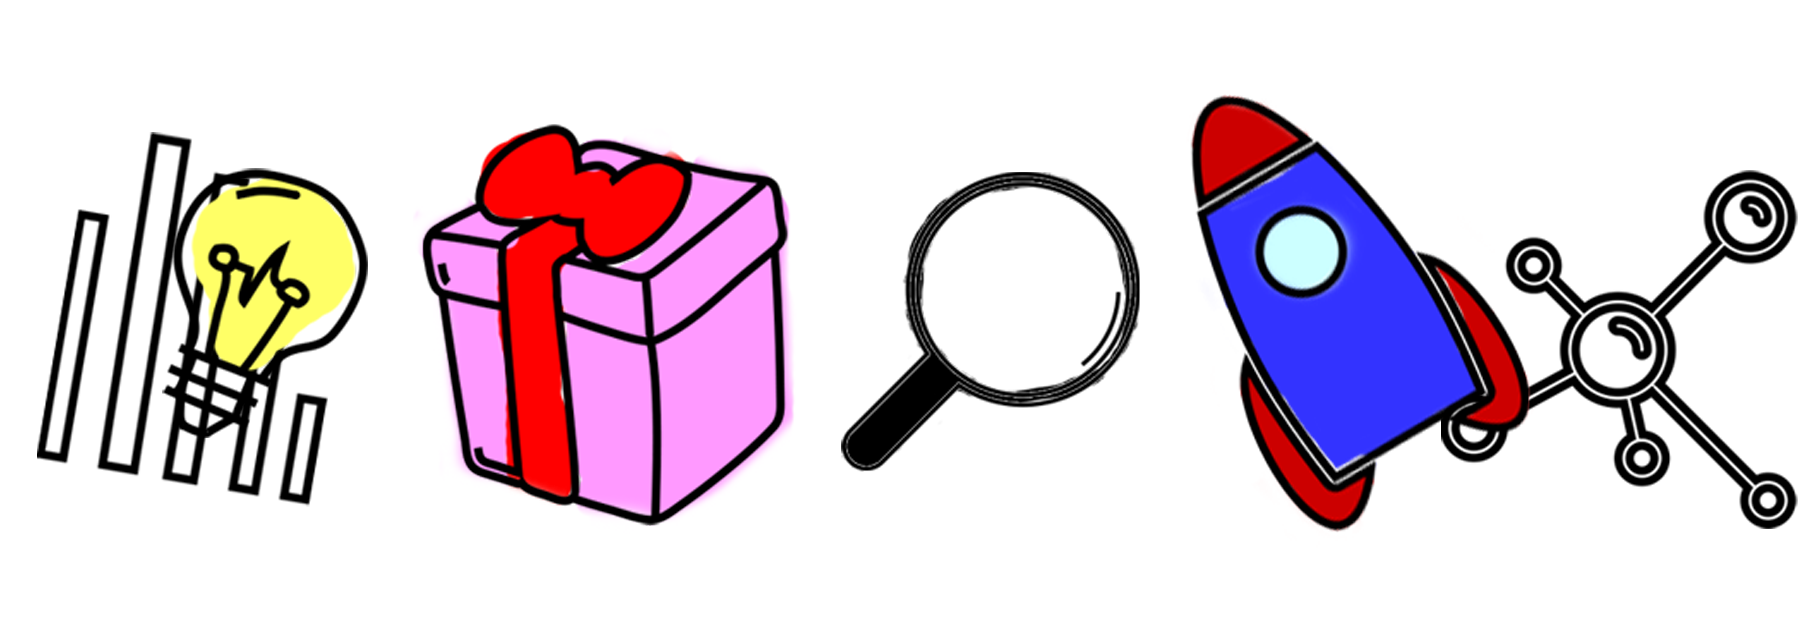 banner_icons.png